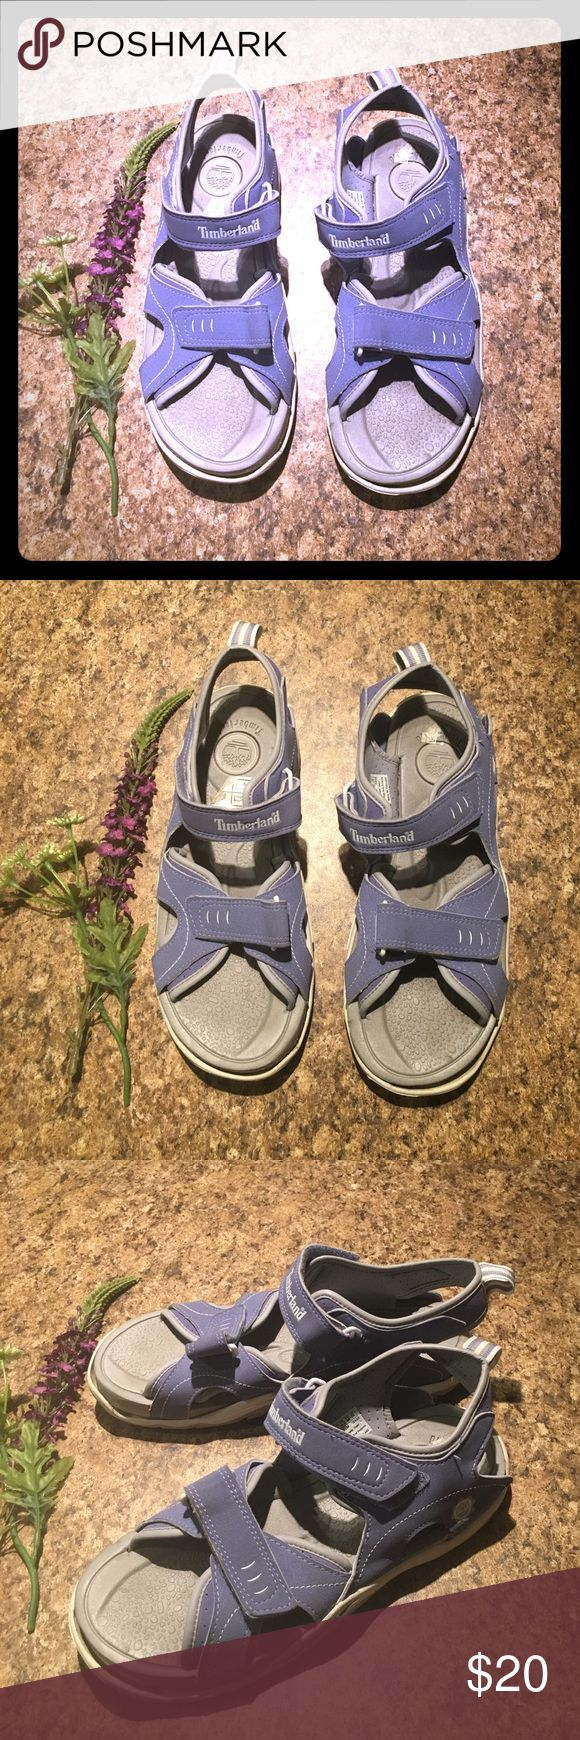 Timberland Lavender Hiking Sport Sandal Size 7 US Timberland- Lavender Purple - Size 7US- Sport Sandal. Great for outdoor summer play! These are sooo comfortable and nice ! Excellent condition. Smoke free home. Great bargain !! If your going on a trip these are a must have !! Great pair of kicks! Timberland Shoes Sandals